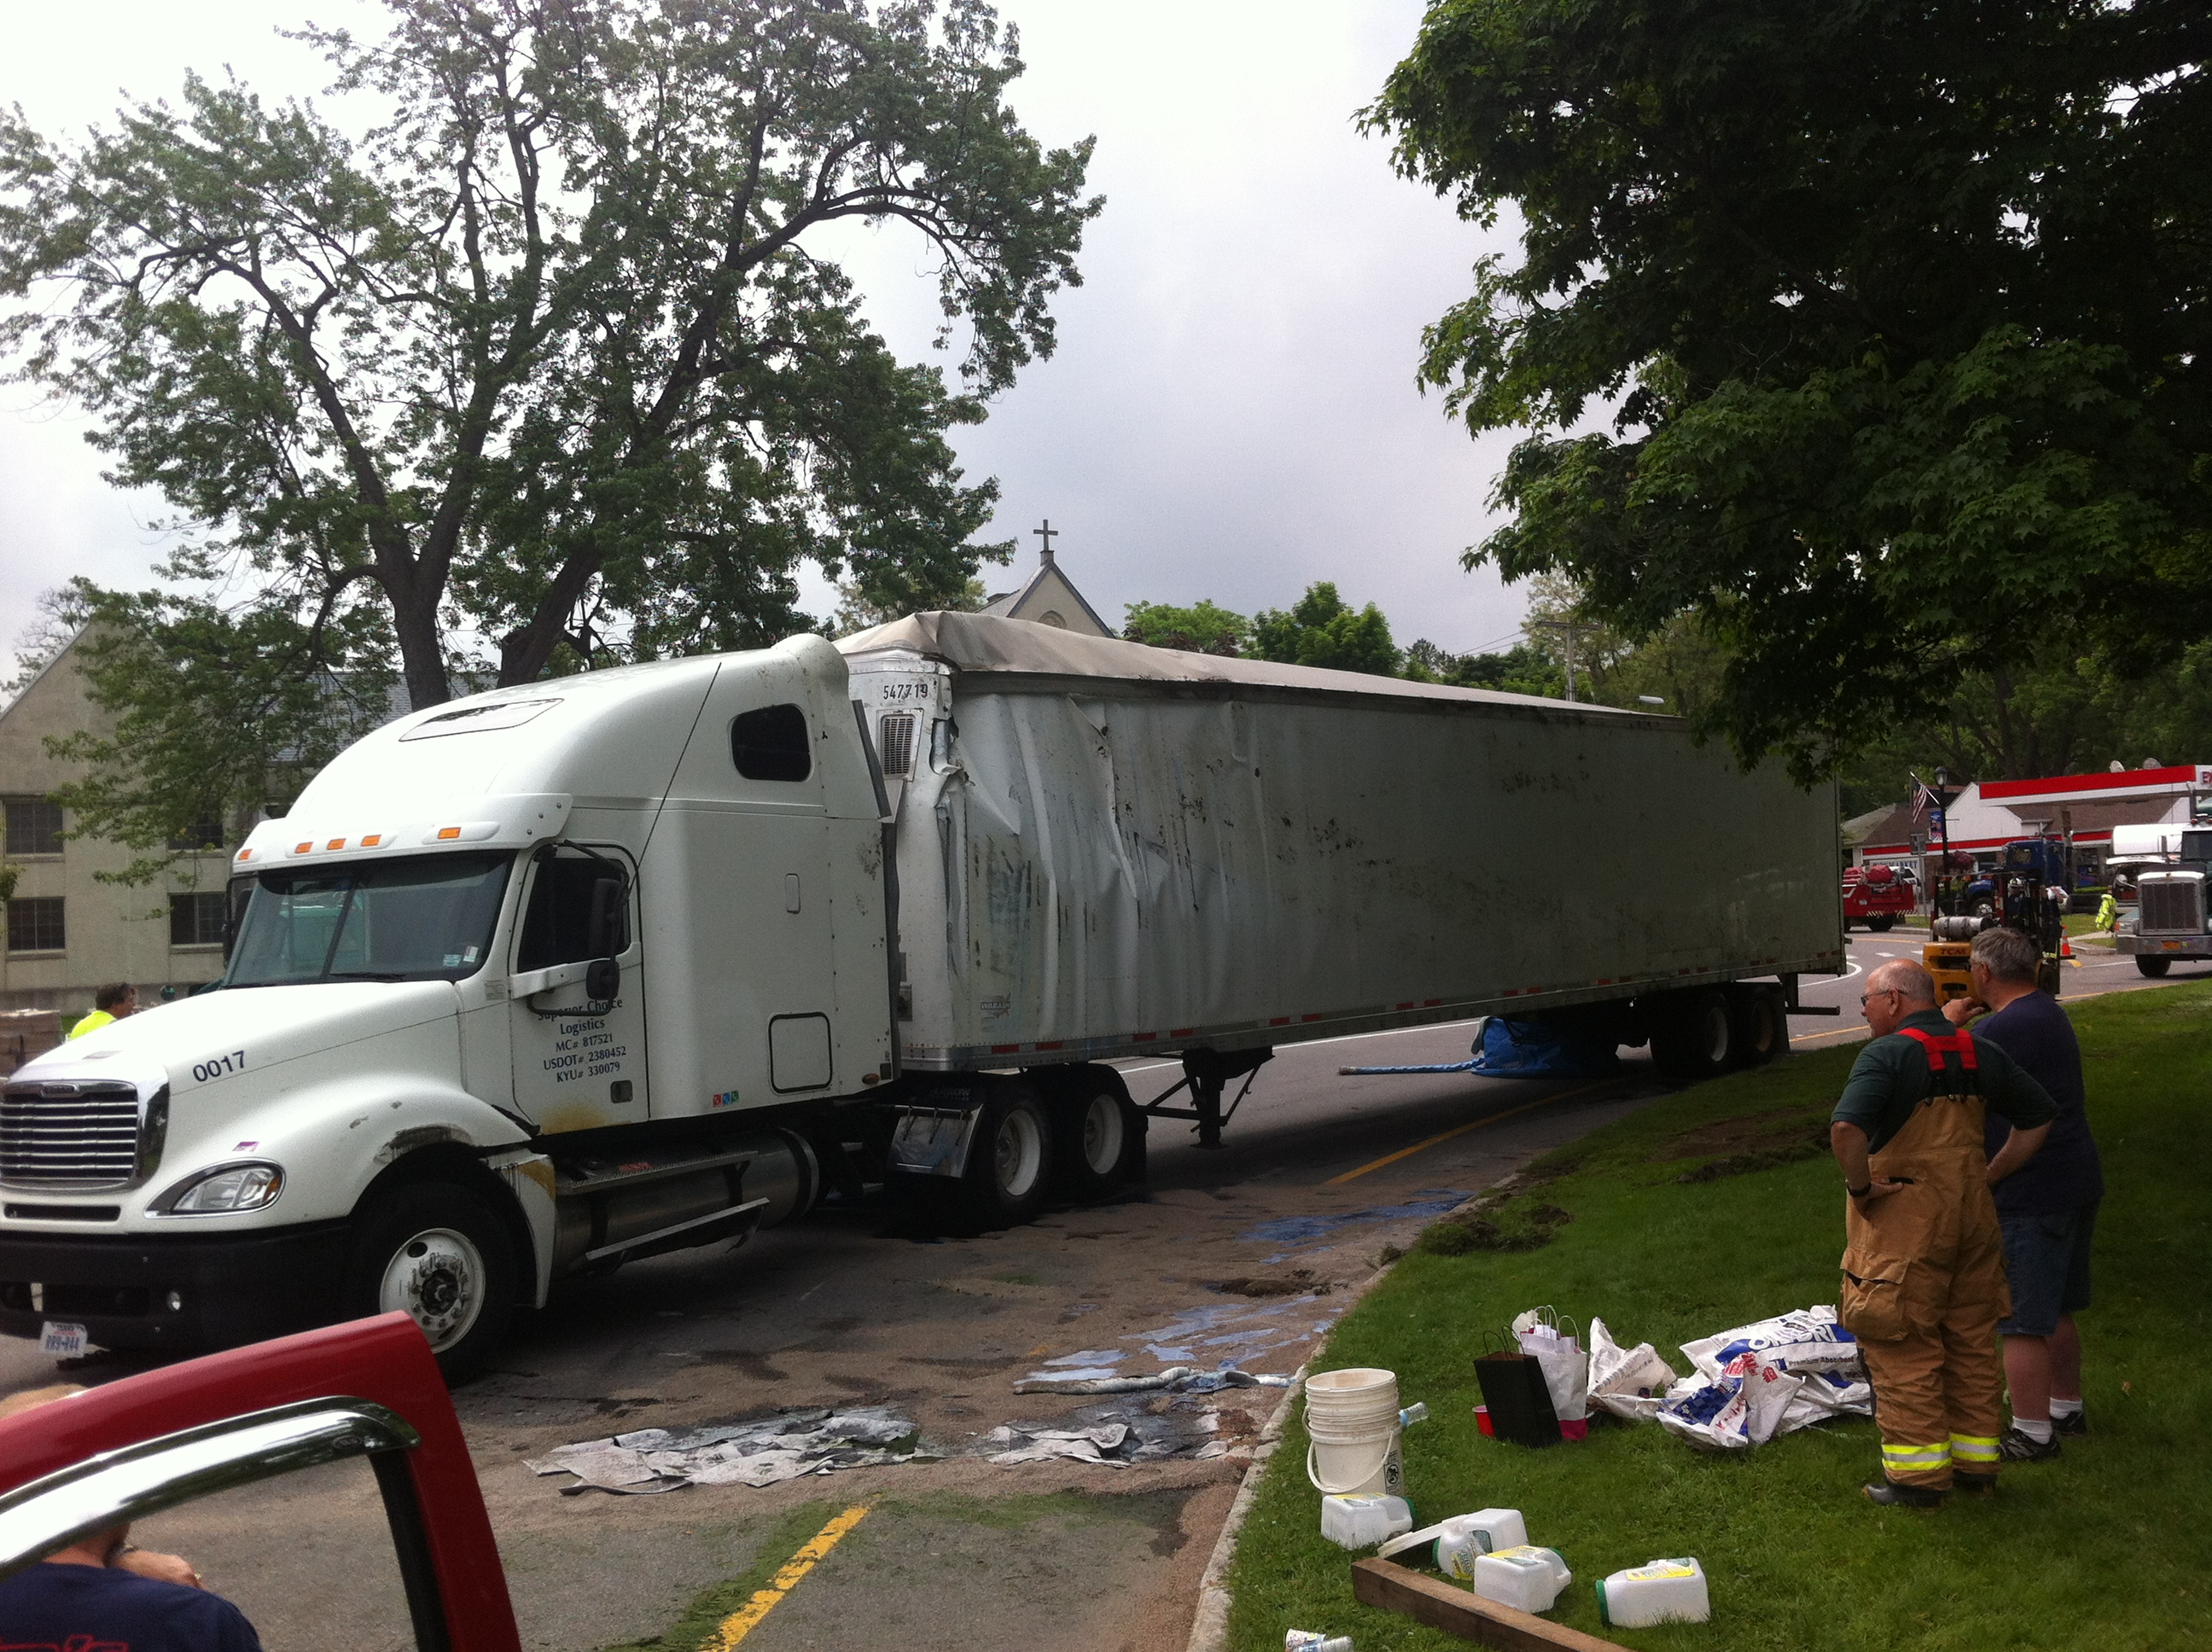 Avon Tractor Trailer Capsizes on Circle, Driver Ticketed